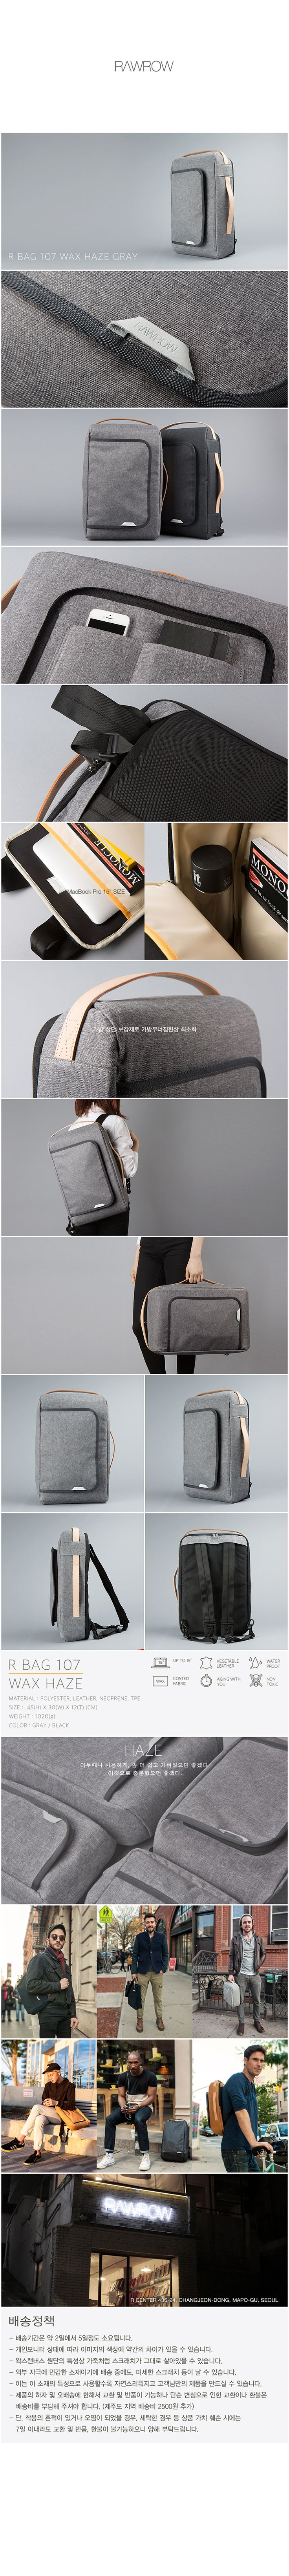 great laptop backpack with luggage handle